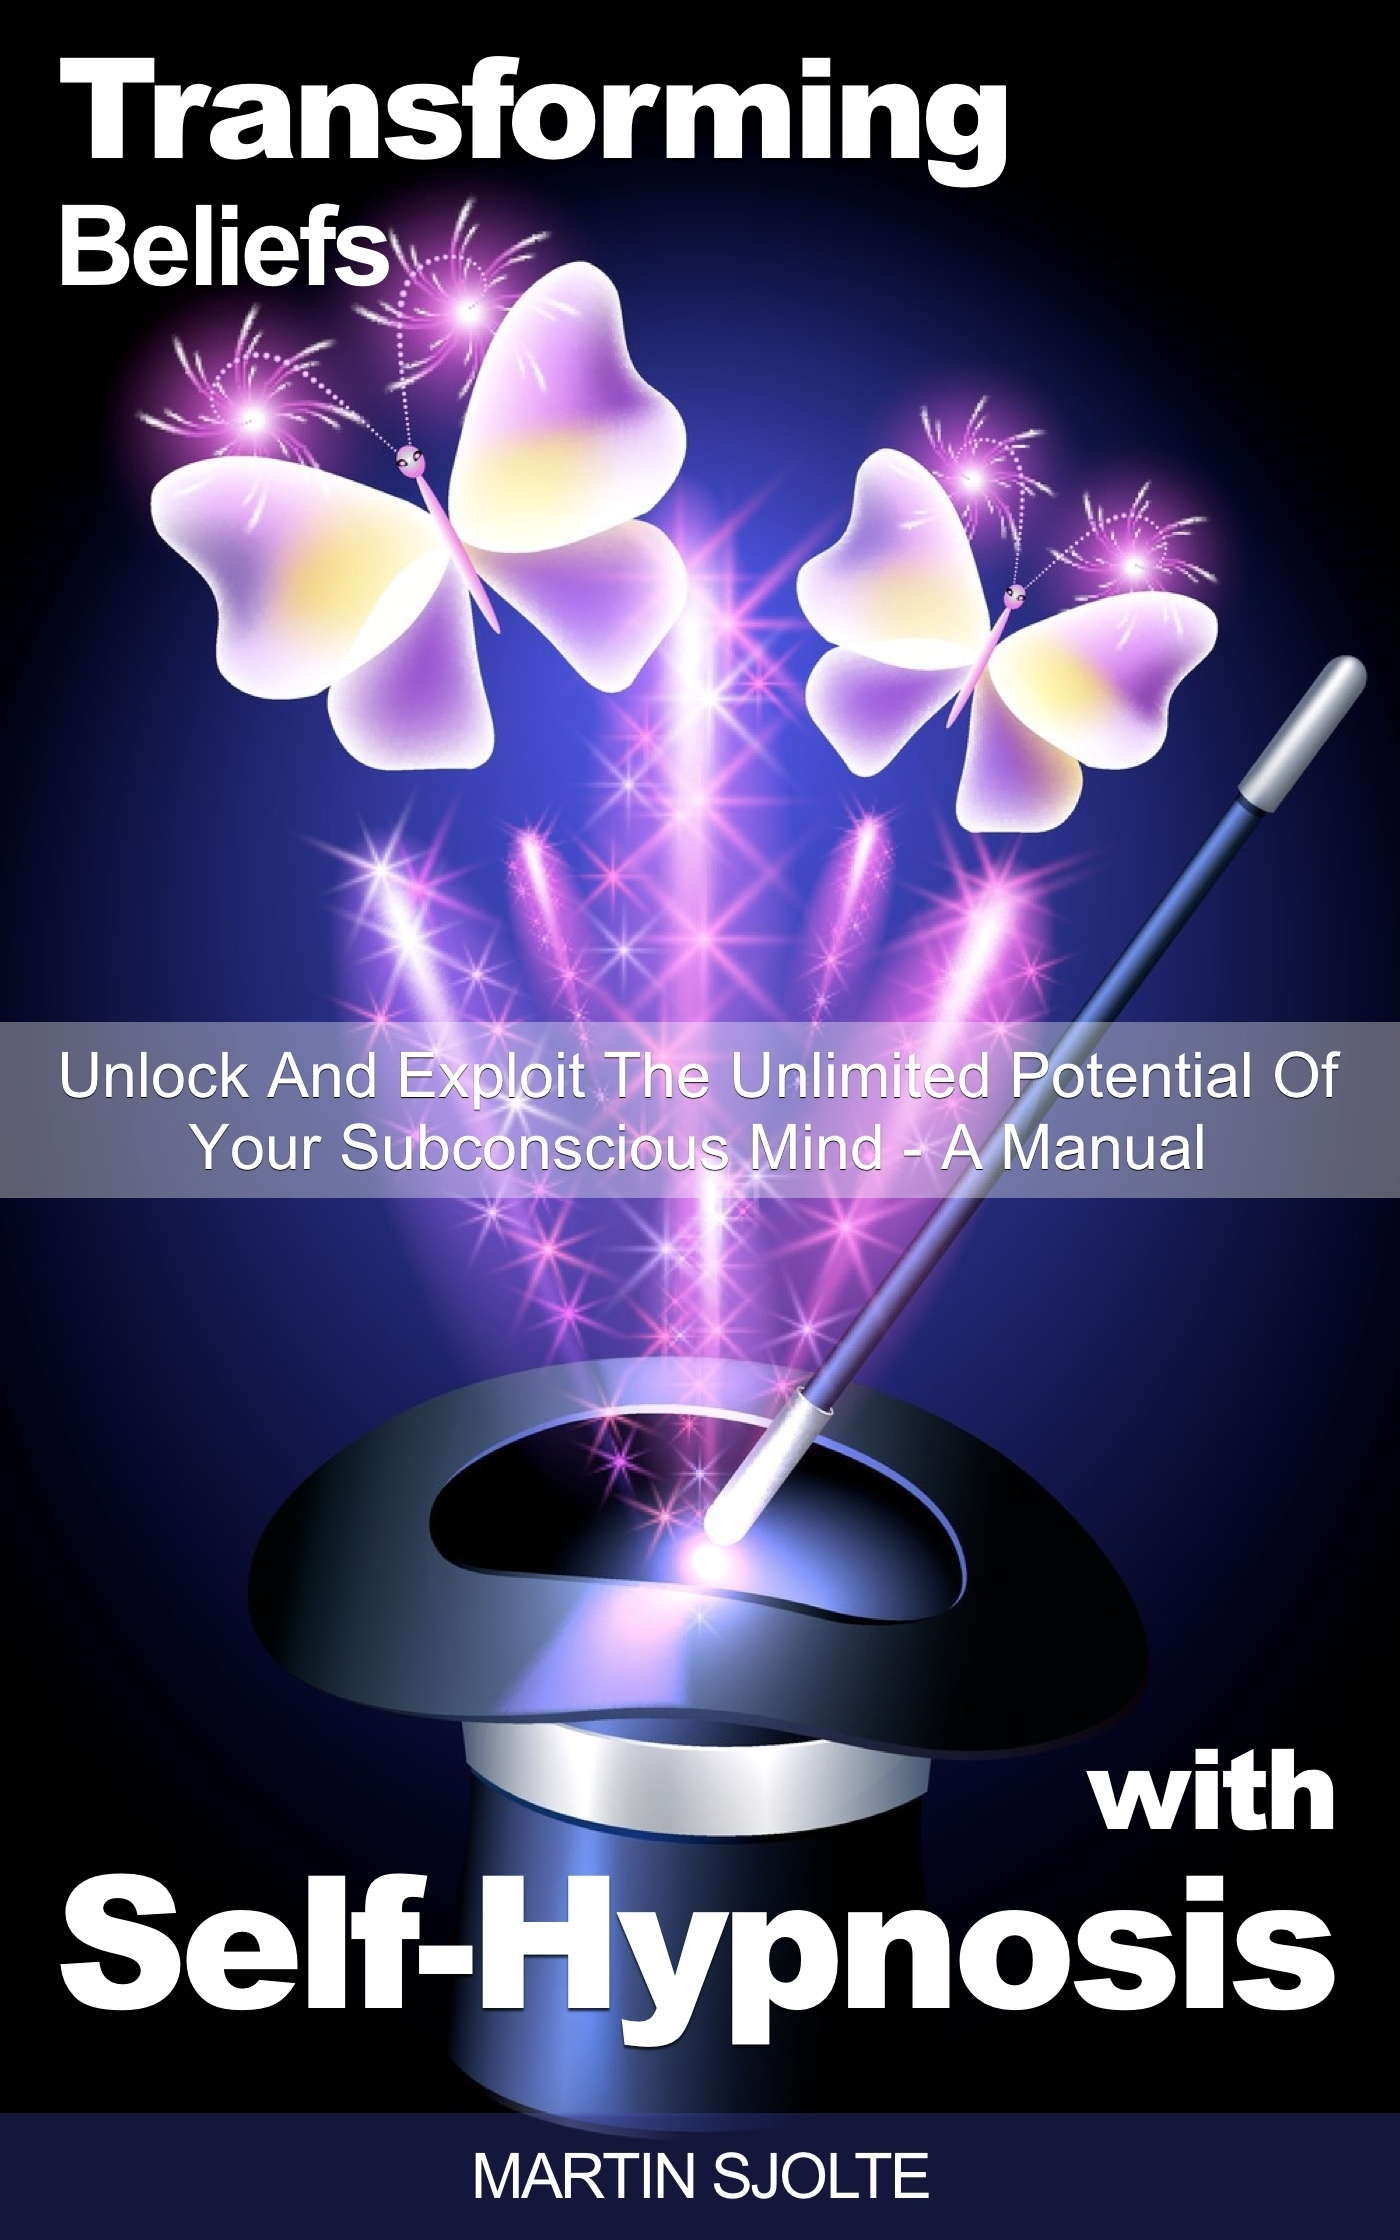 Transforming-Beliefs-with-Self-Hypnosis-Unlock-and-Exploit-The-Unlimited-Potential-of-Your-Subconscious-Mind-a-Manual